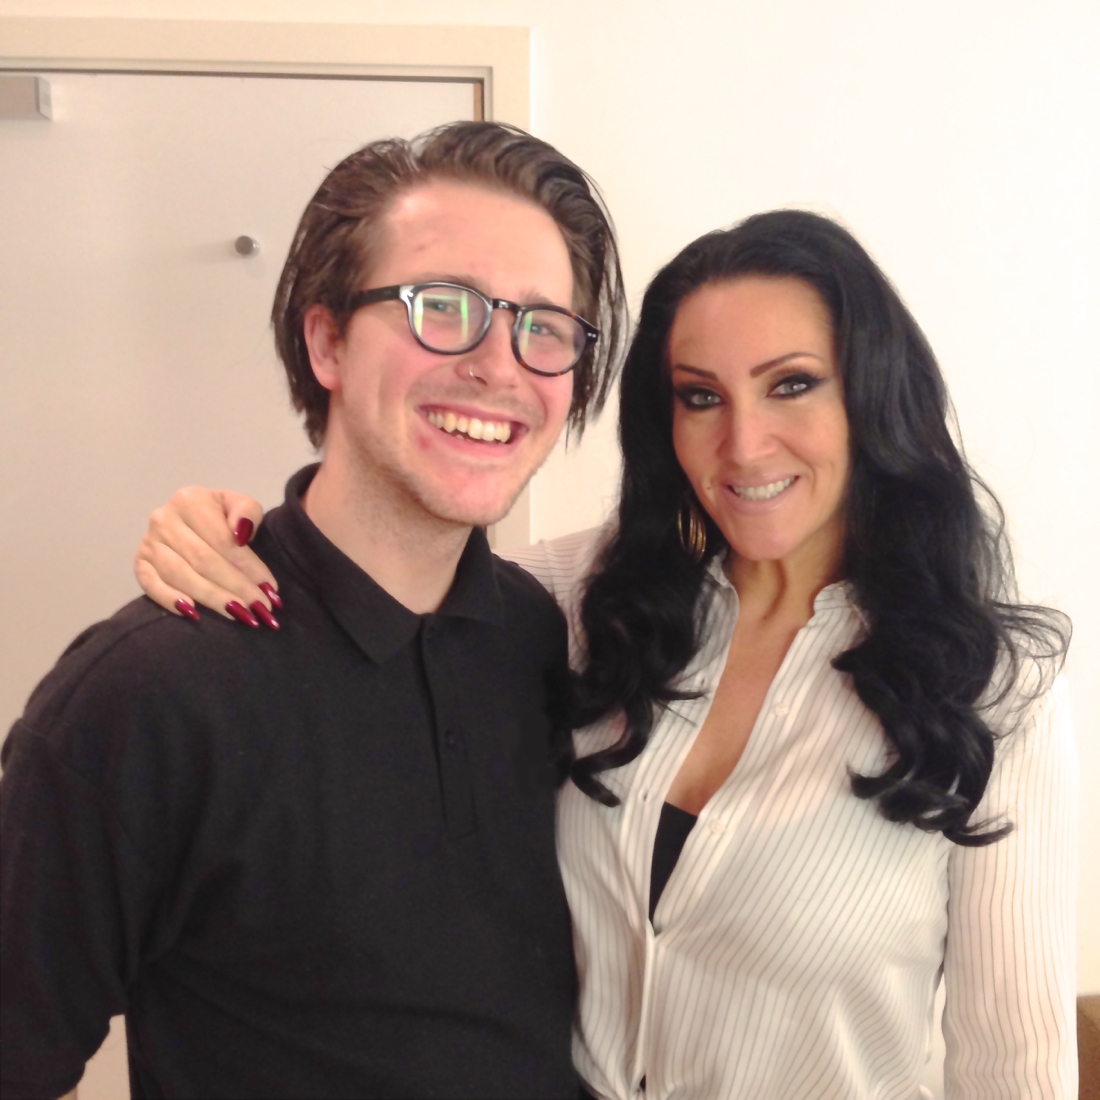 michelle visage, russell alford, itv michelle visage, itv russell alford, gastro gays michelle visage